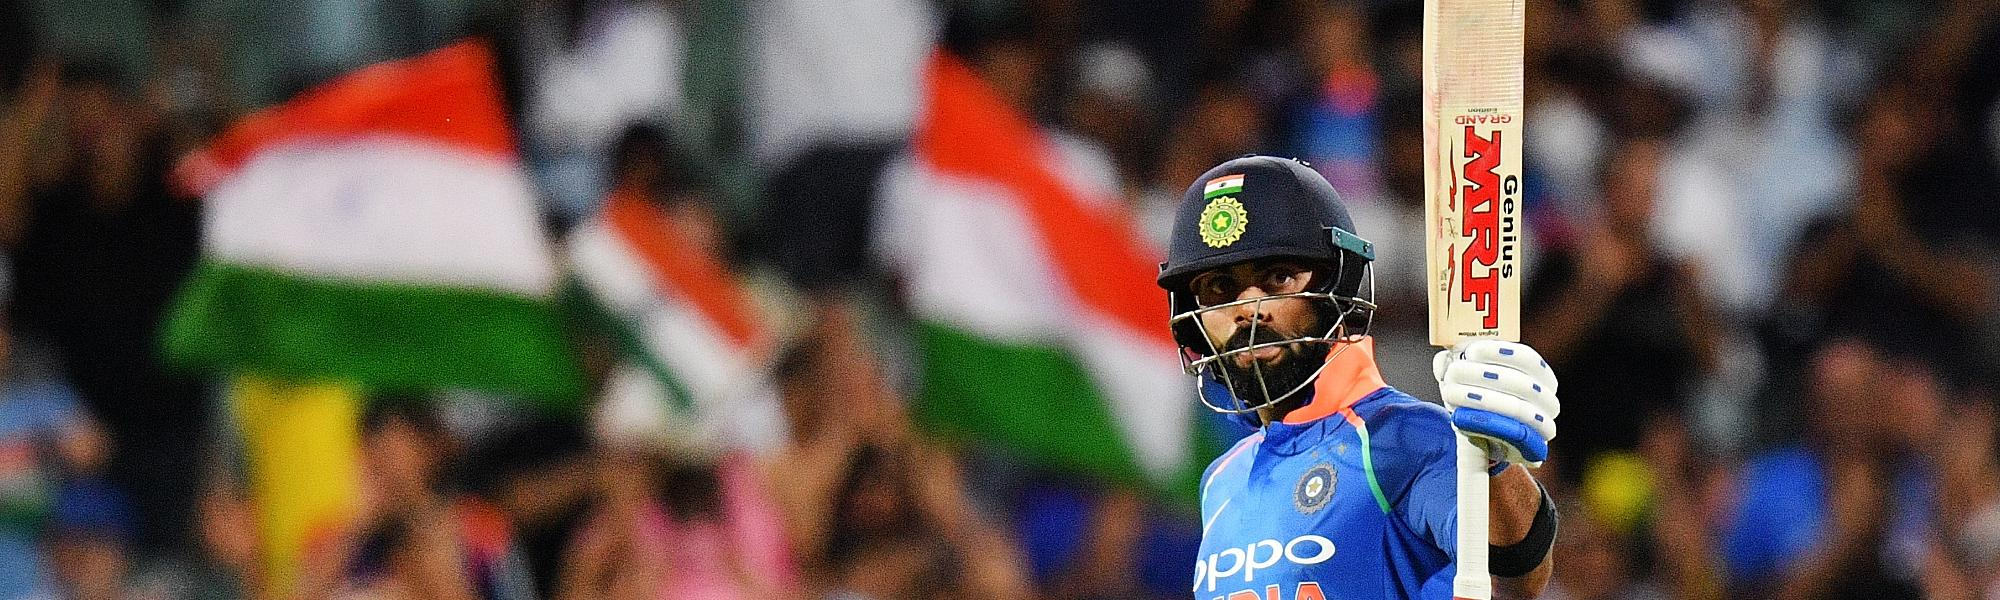 Virat Kohli brought up his 39th ODI hundred for India, scoring 104 from 112 deliveries